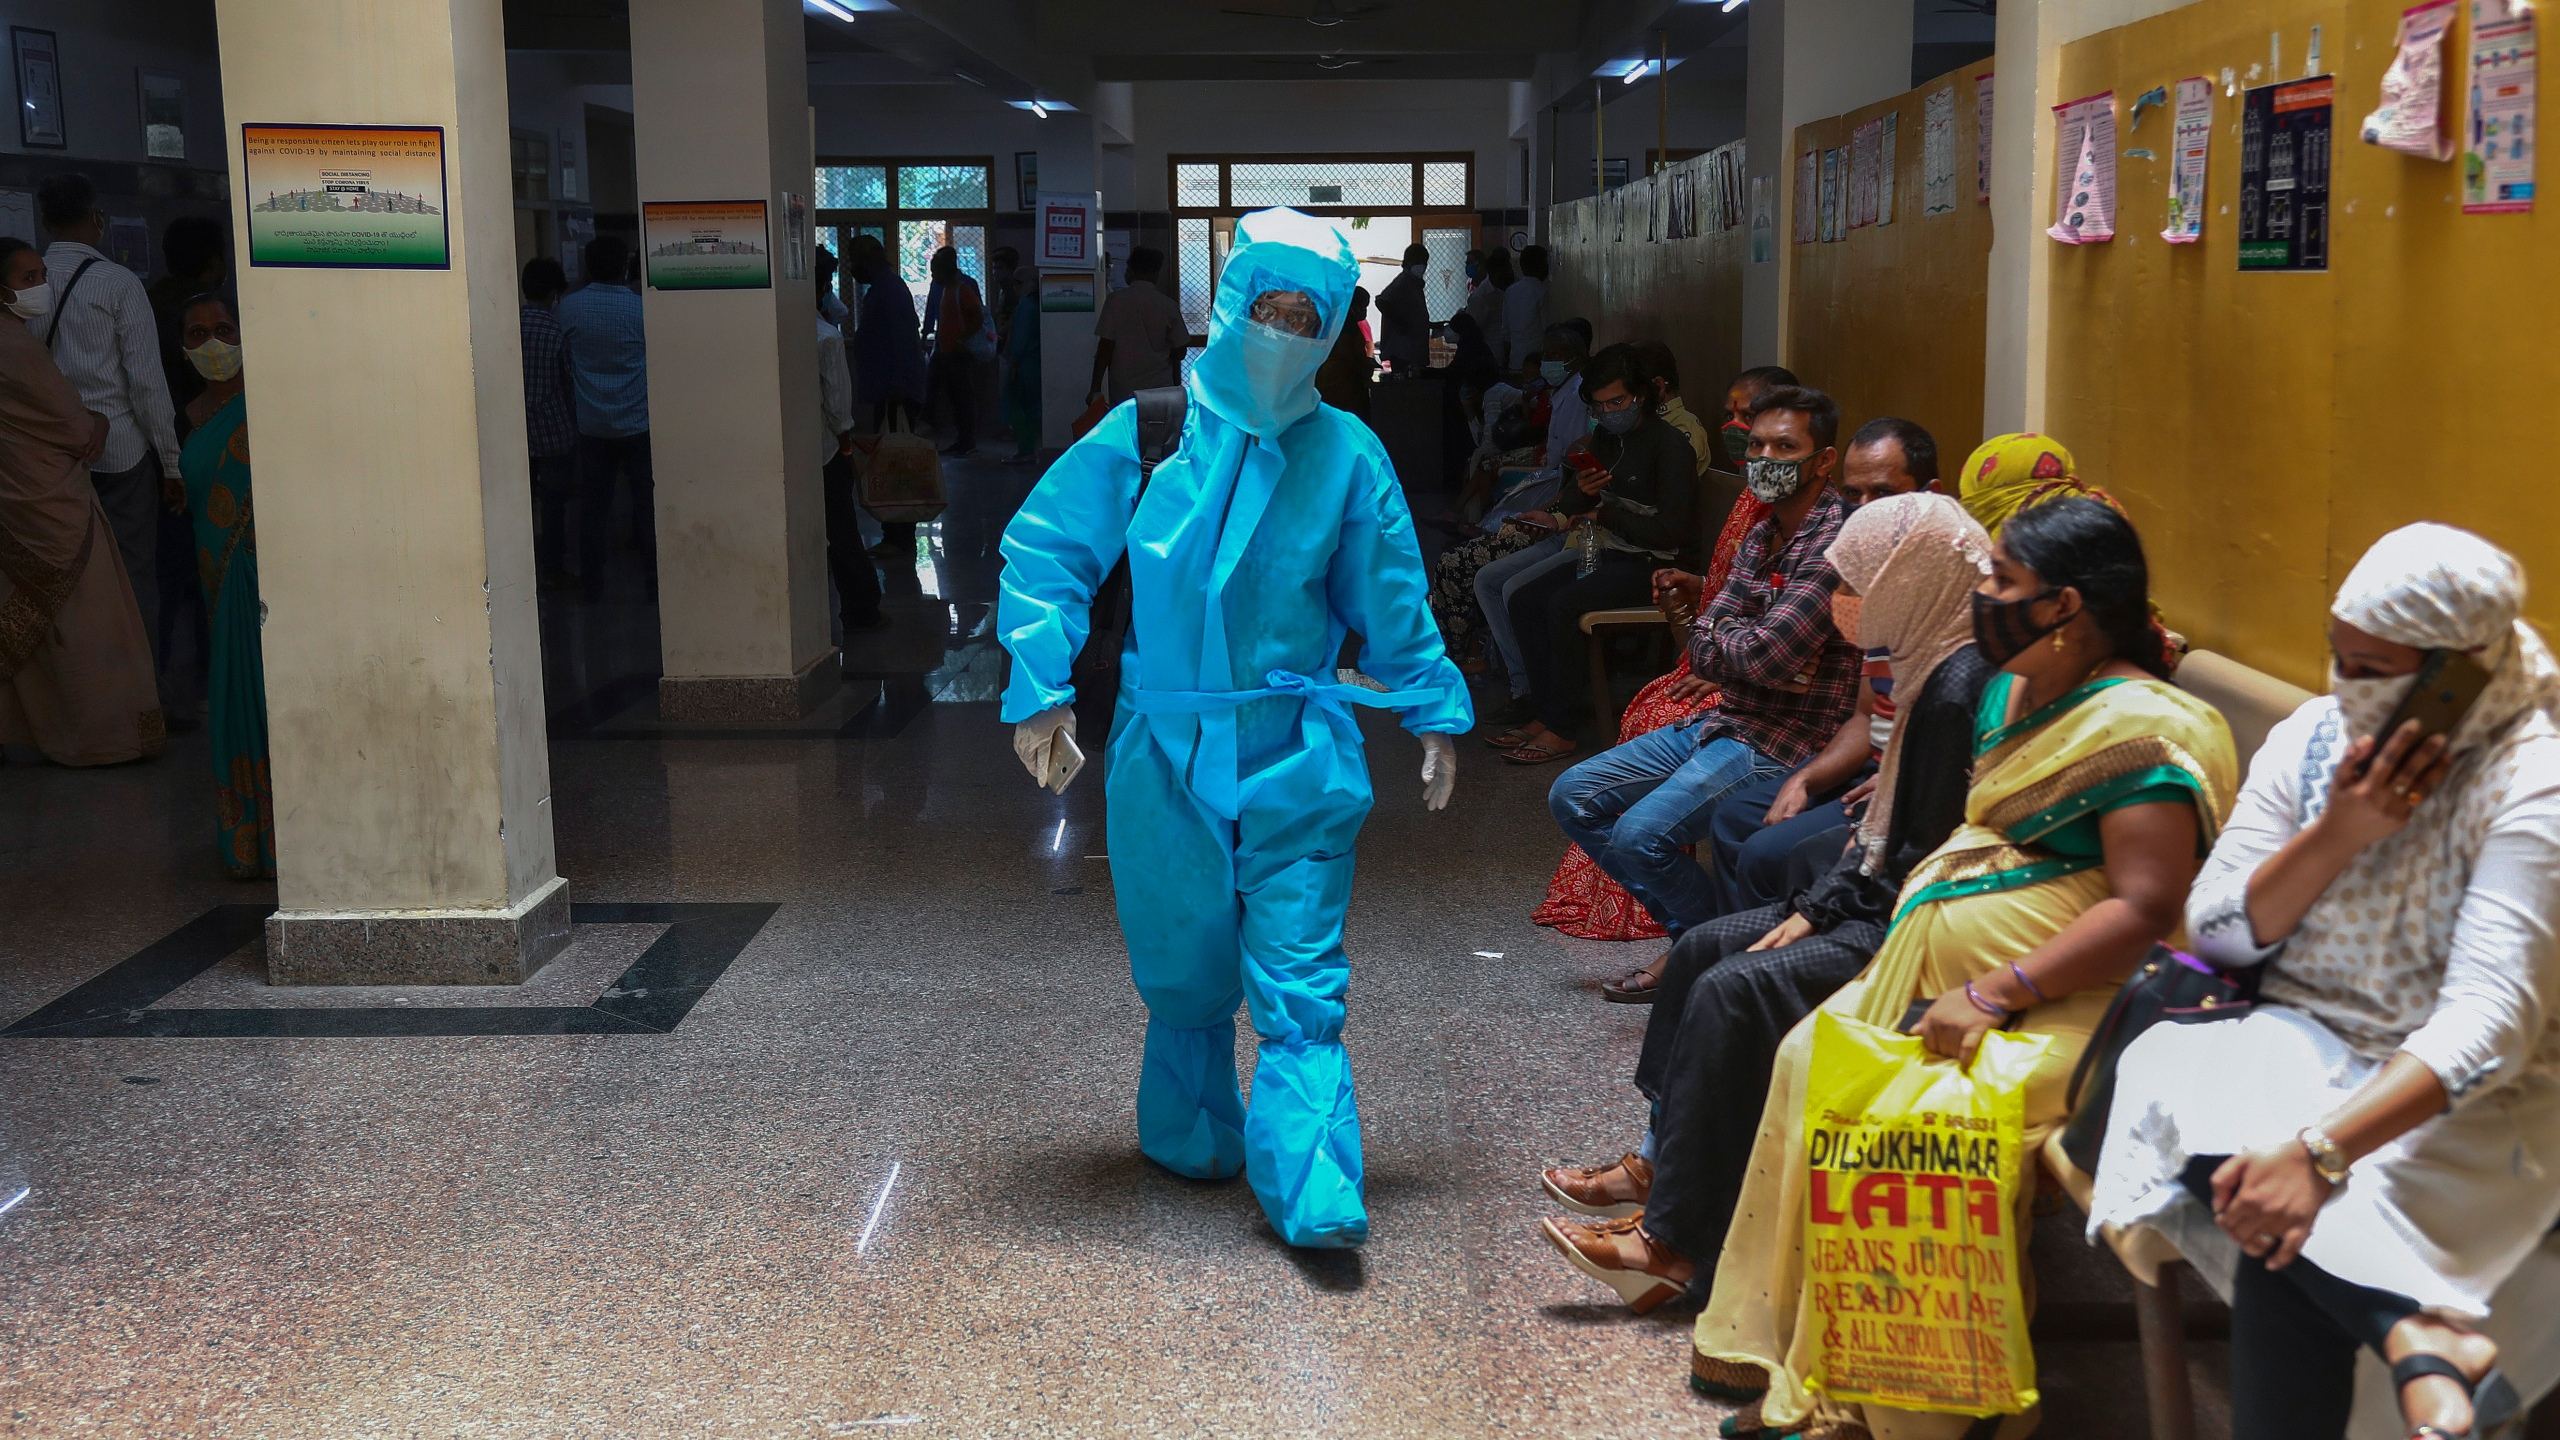 An Indian woman in personal protective suit walks towards a COVID-19 ward of a hospital as others waits for their test results in Hyderabad, India, Thursday, April 29, 2021. (AP Photo/Mahesh Kumar A.)